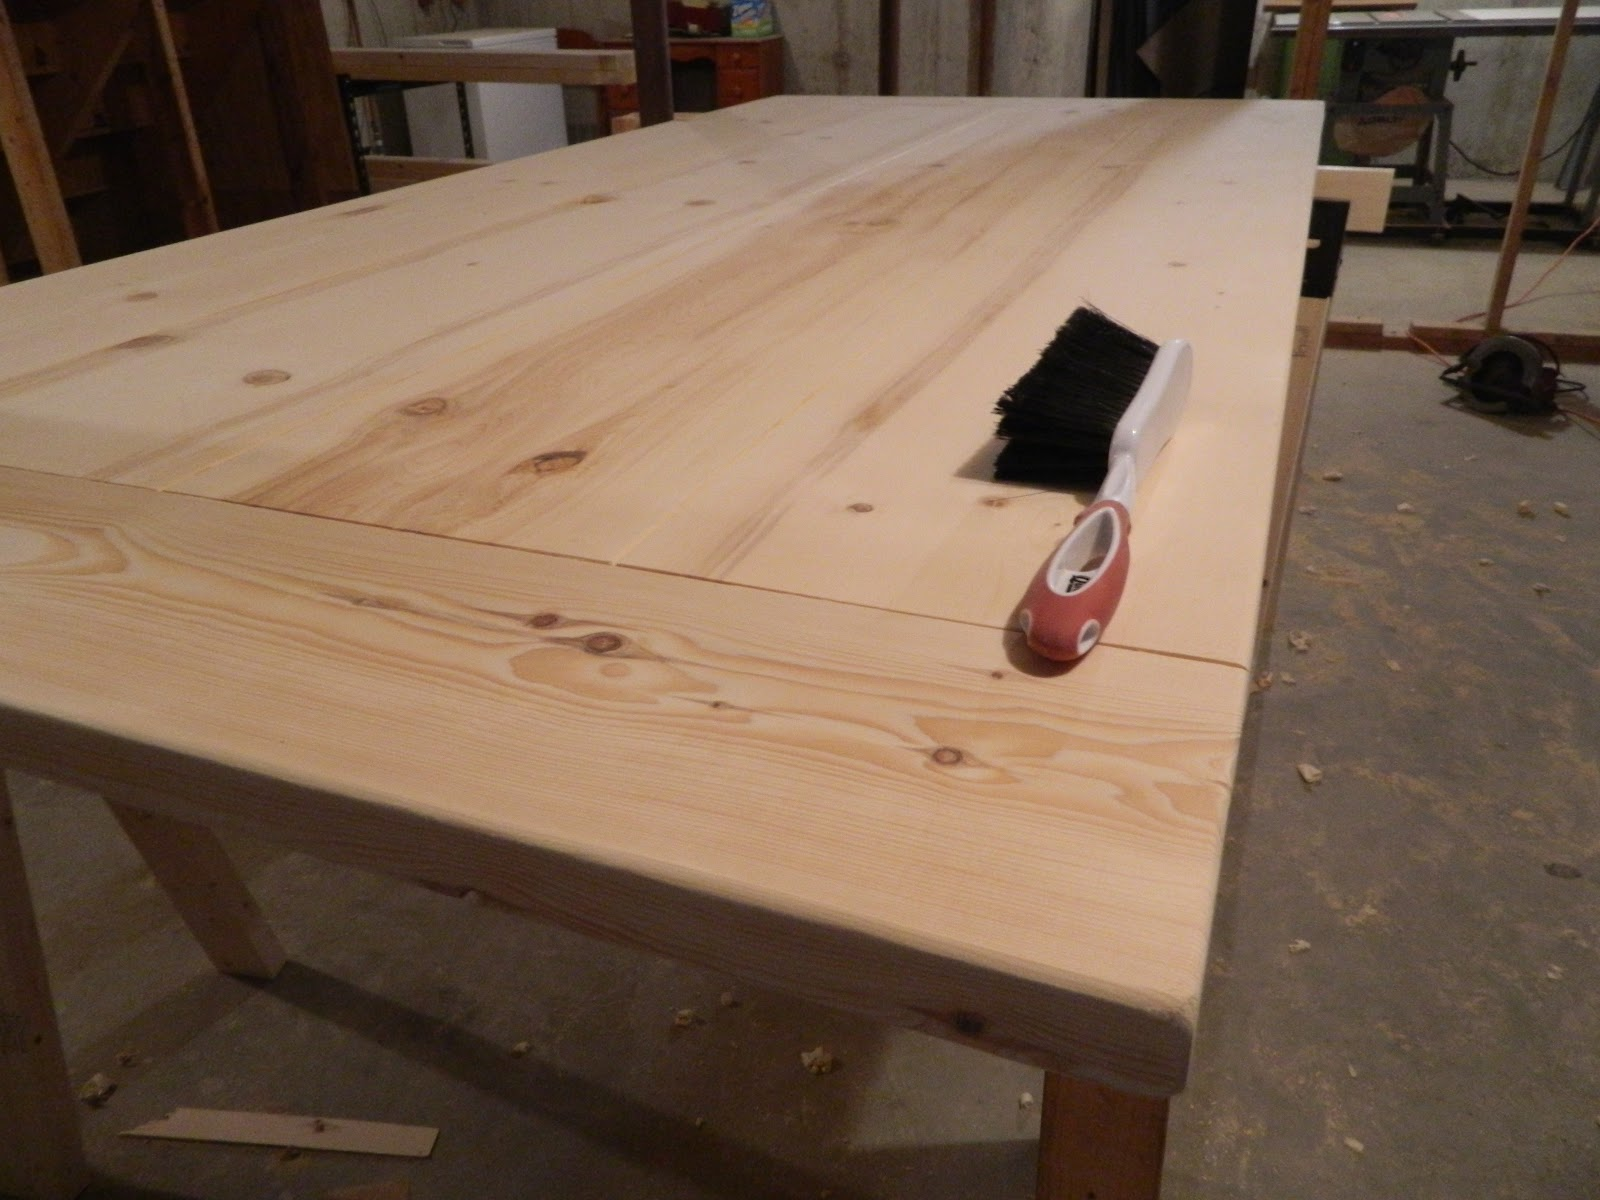 Superb ... Other End Of The Table Top Straight With My Circular Saw, Then Attach  The Breadboards. Once That Was Done, The Table Top Received A Thorough  Sanding.